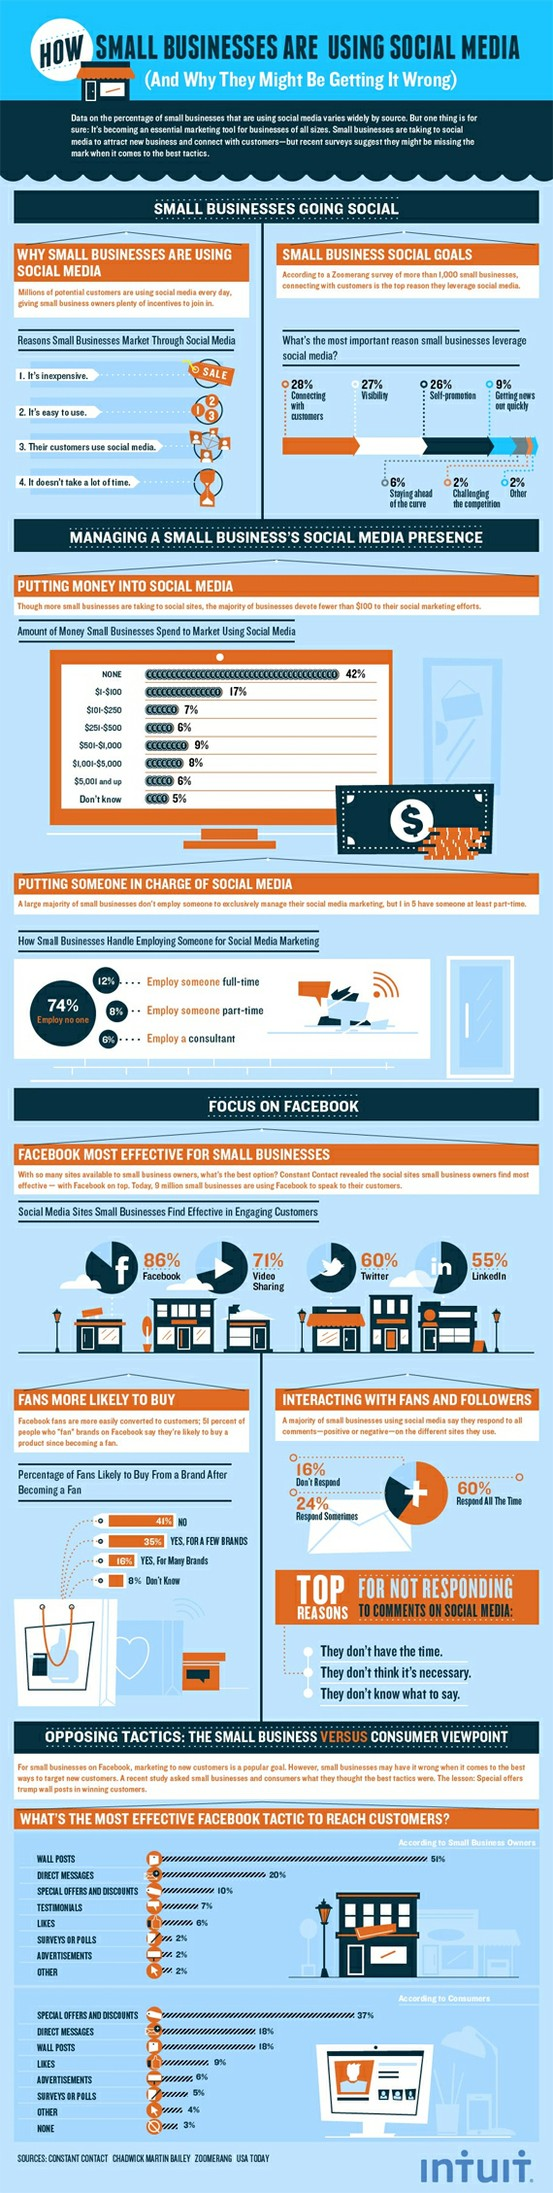 Why Small Businesses Might Be Getting It Wrong About Social Media Infographic Social Media Infographic Small Business Social Media Social Media Business